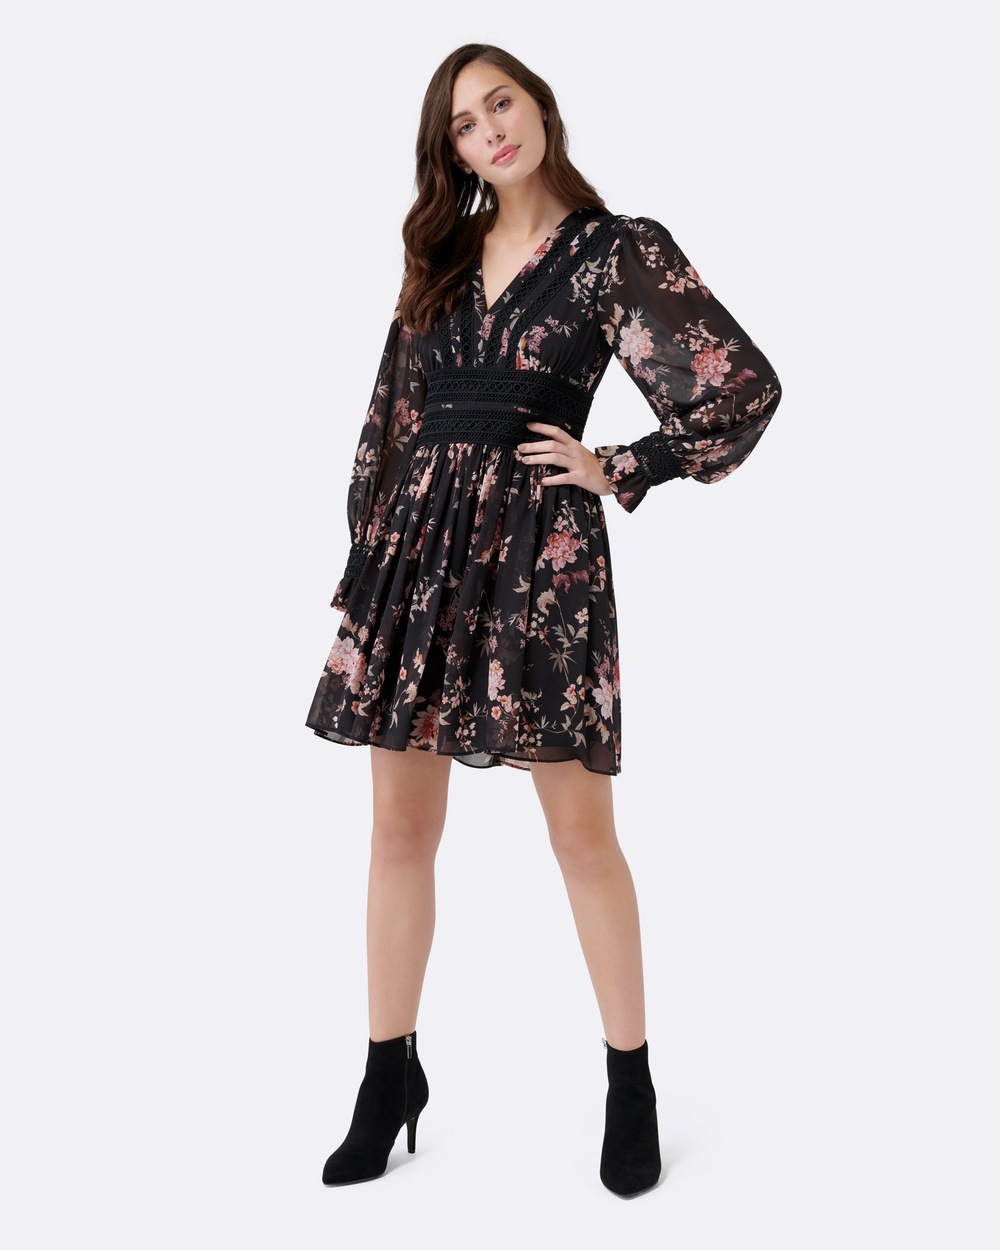 Forever New Gabriella Soft Printed Dress Dresses Black Floral Gabriella Soft Printed Dress